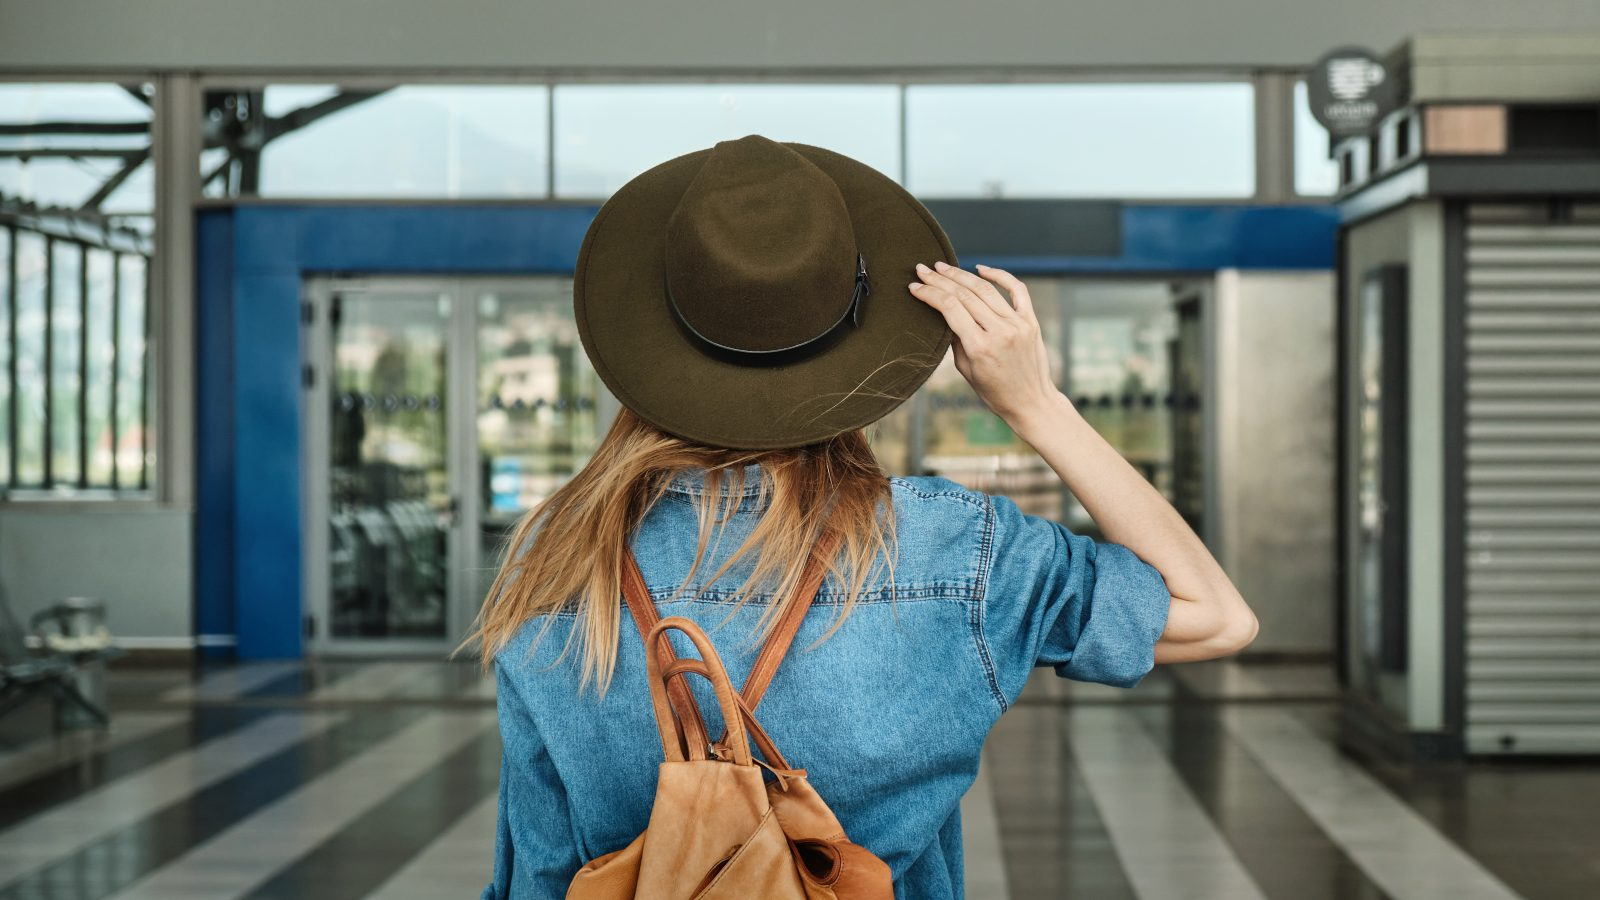 World Tourism Day 2021: Safety Tips for Domestic and International Travel Amid Covid-19